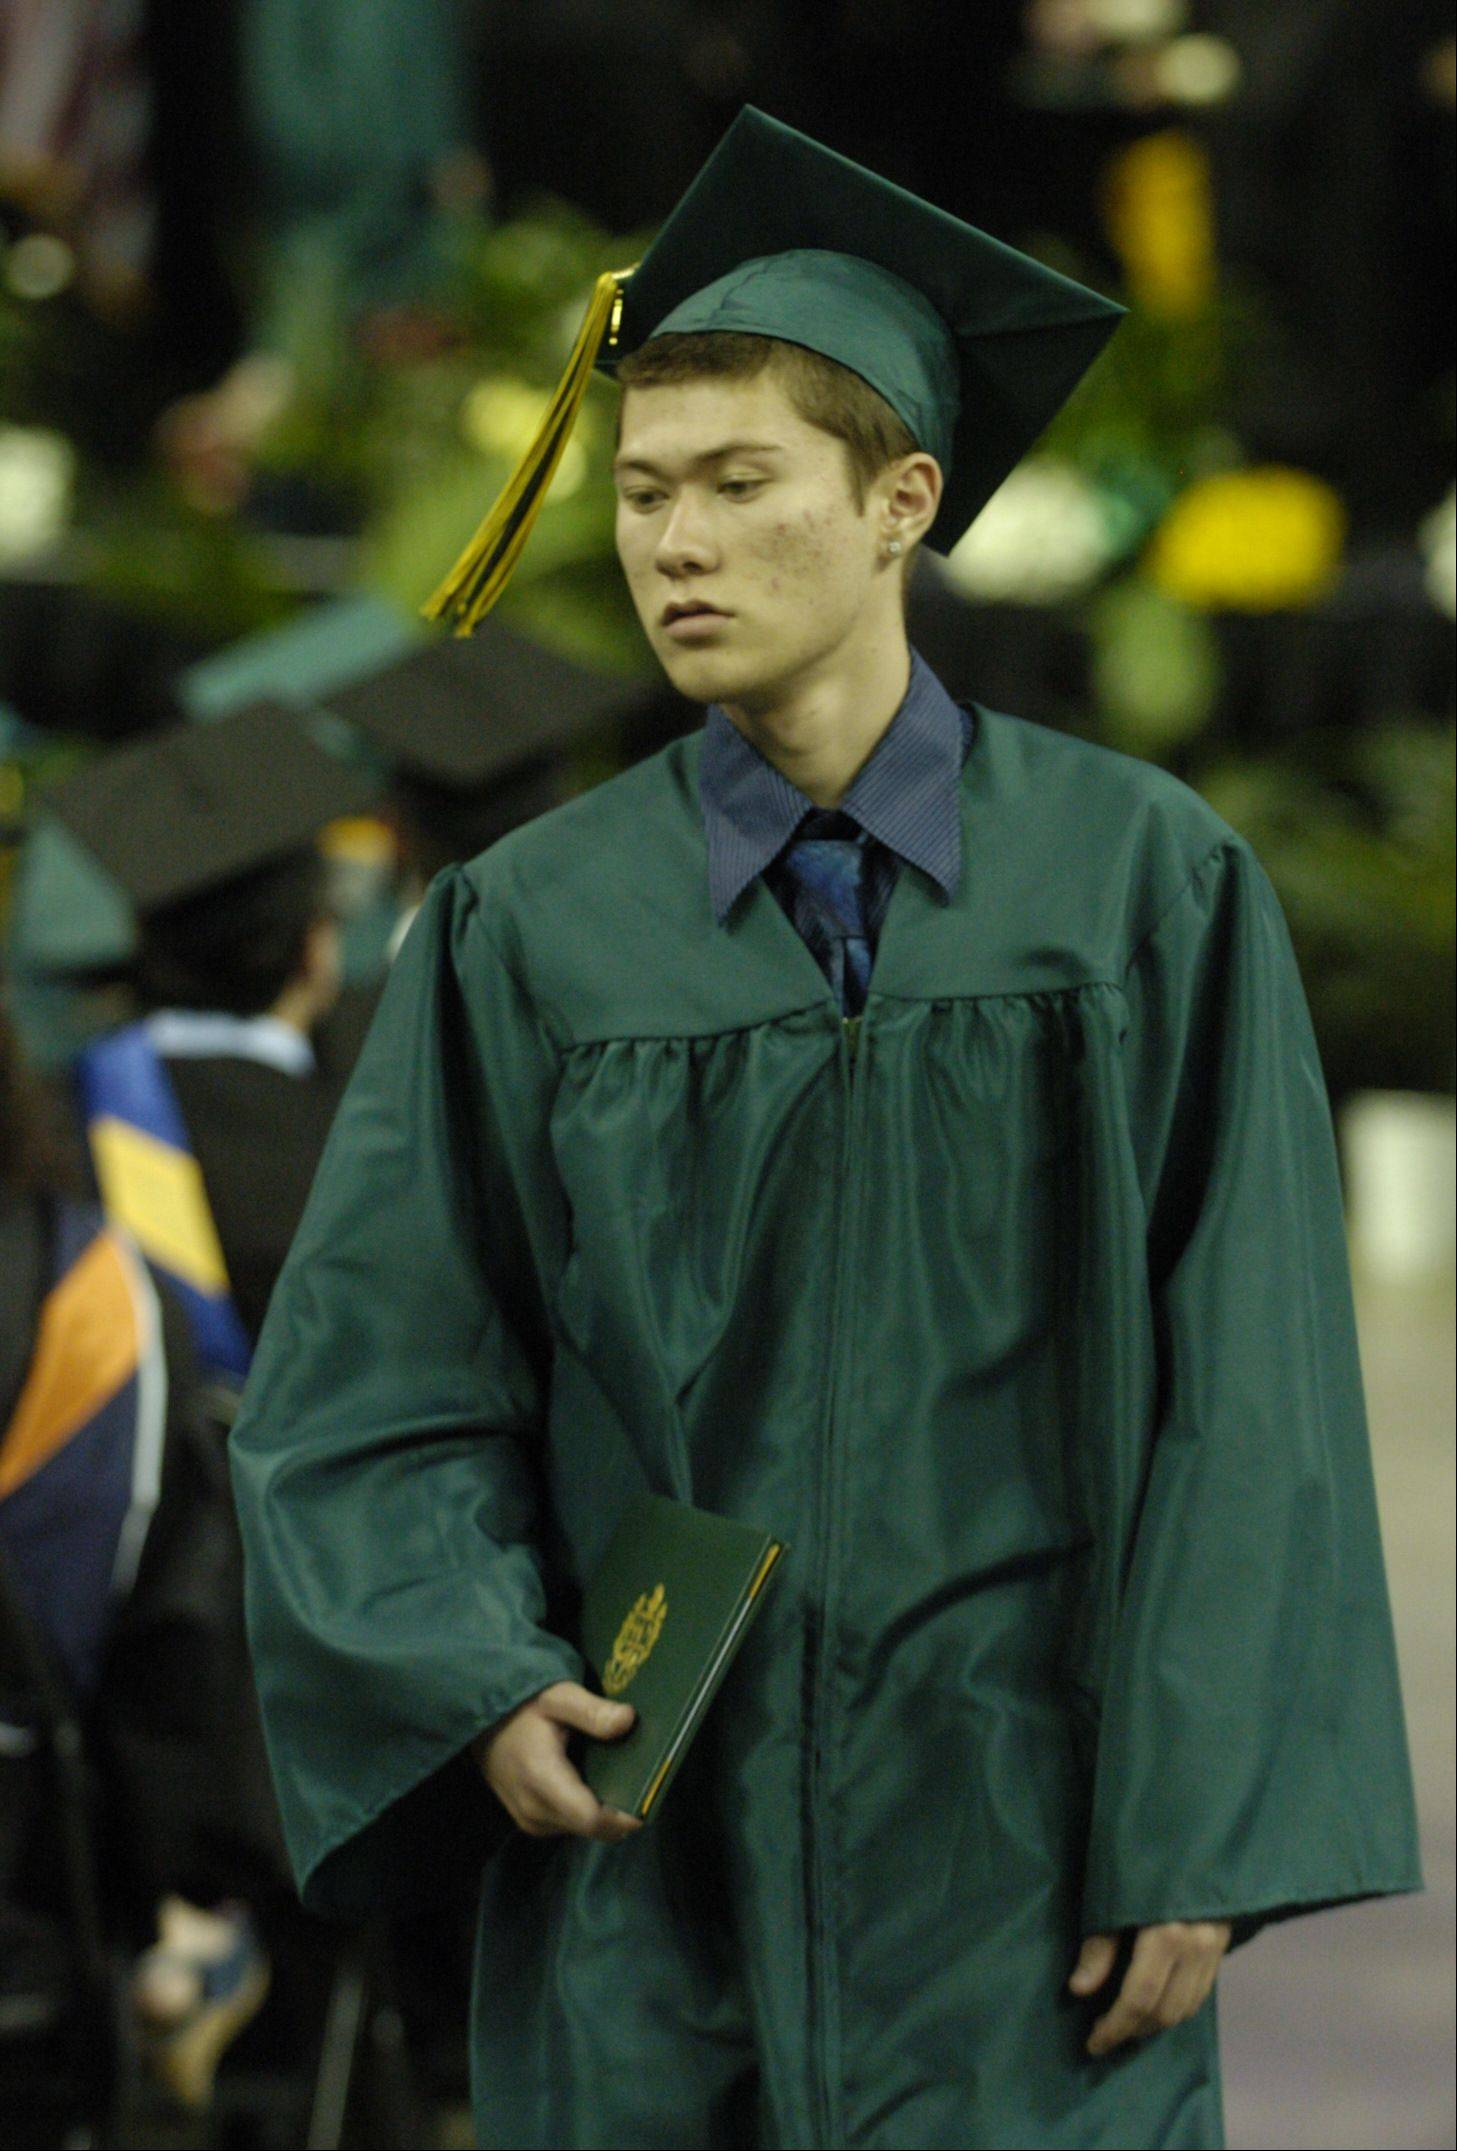 Images from the Fremd High School graduation on Sunday, June 3rd at the Sears Centre in Hoffman Estates.